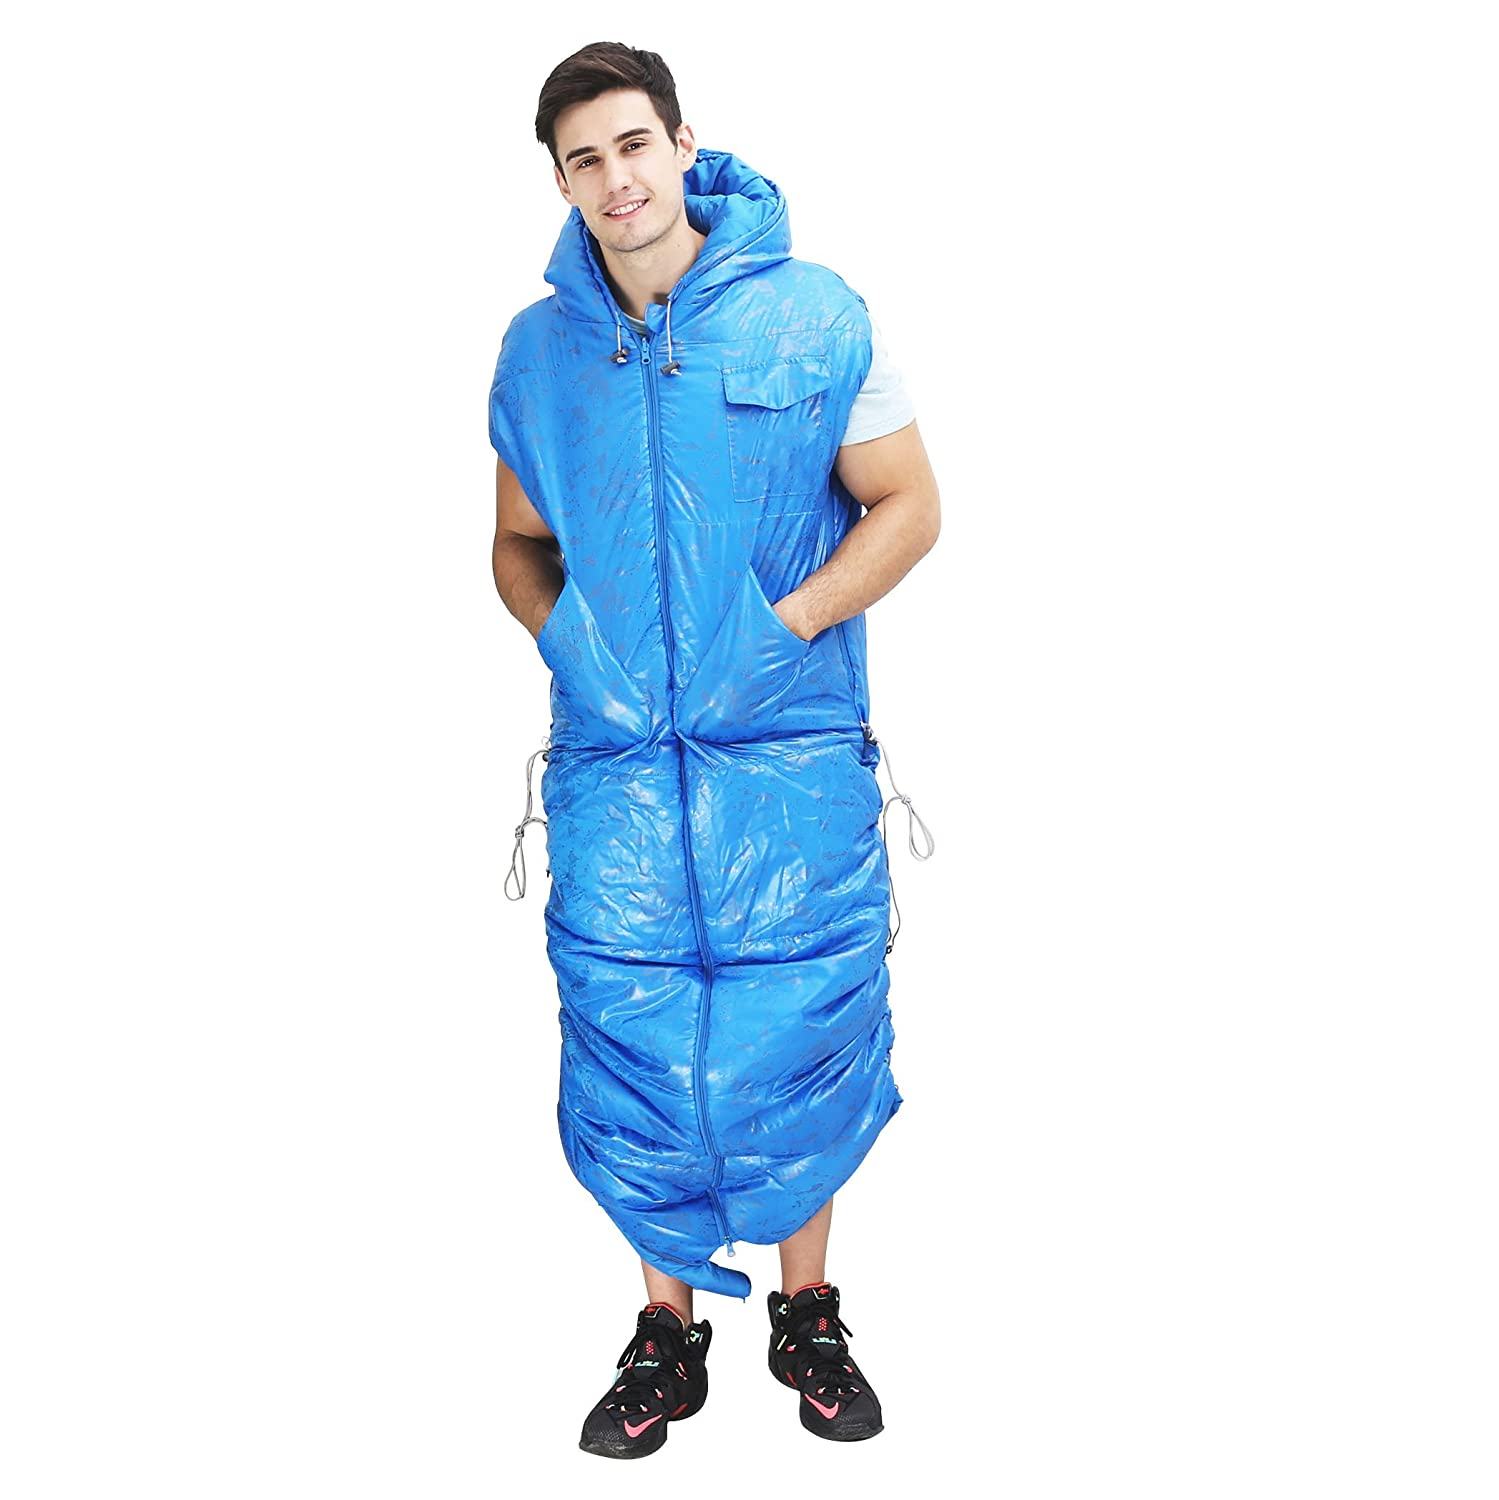 Sleeping Bag – Adjustable Lightweight Portable, Waterproof, Comfort With Compression Sack   Great For 4 Season Traveling, Camping, Hiking, Outdoor Activities & Office by Wnnideo